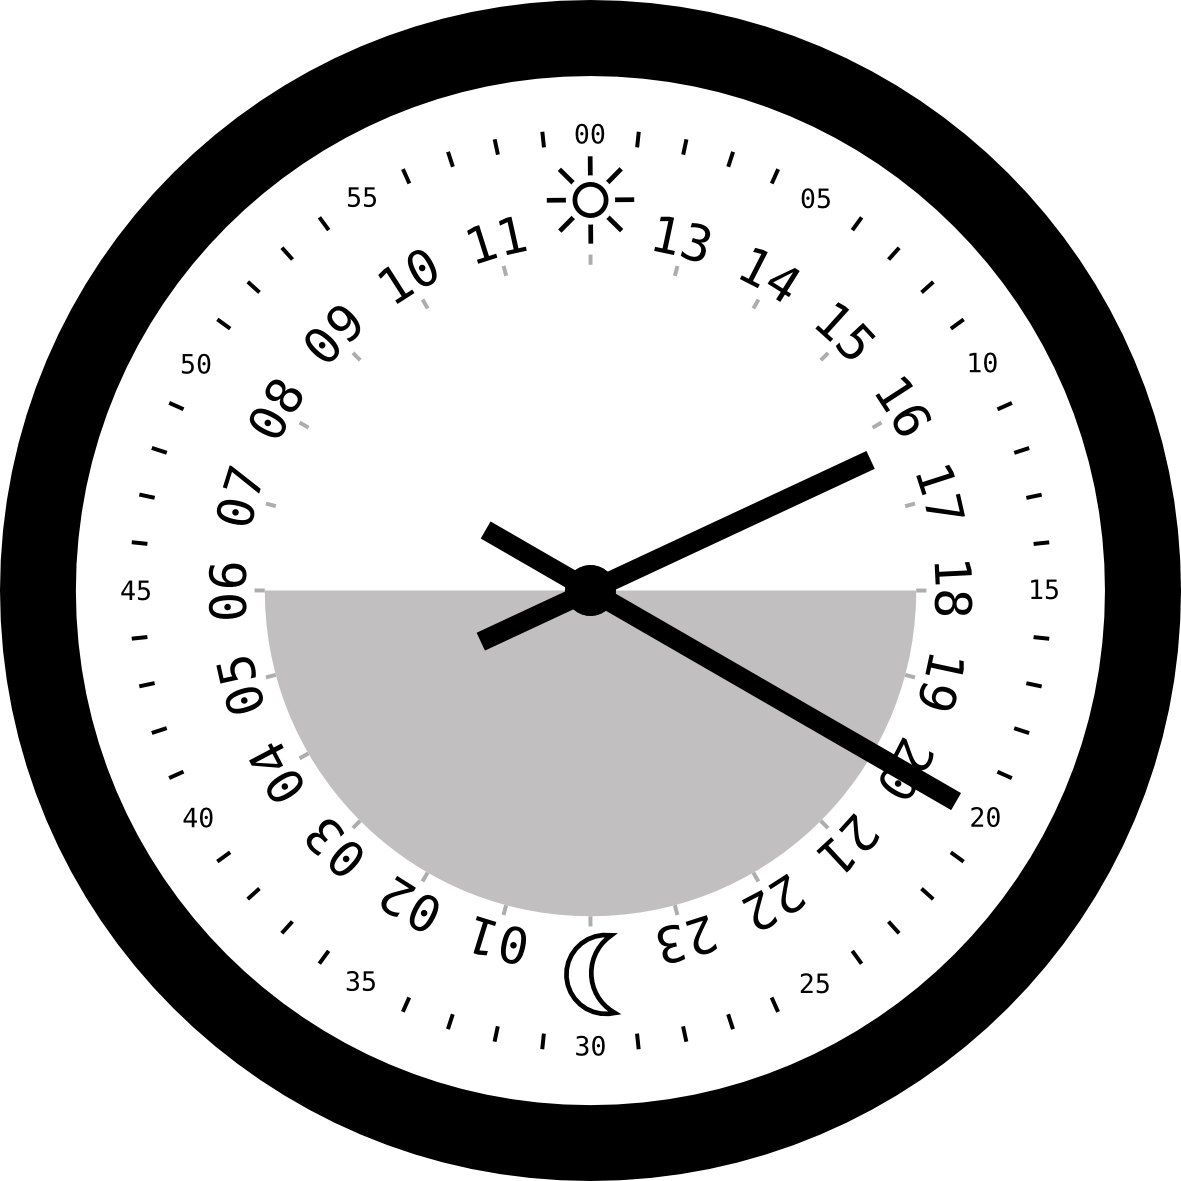 24 hour clock face template.